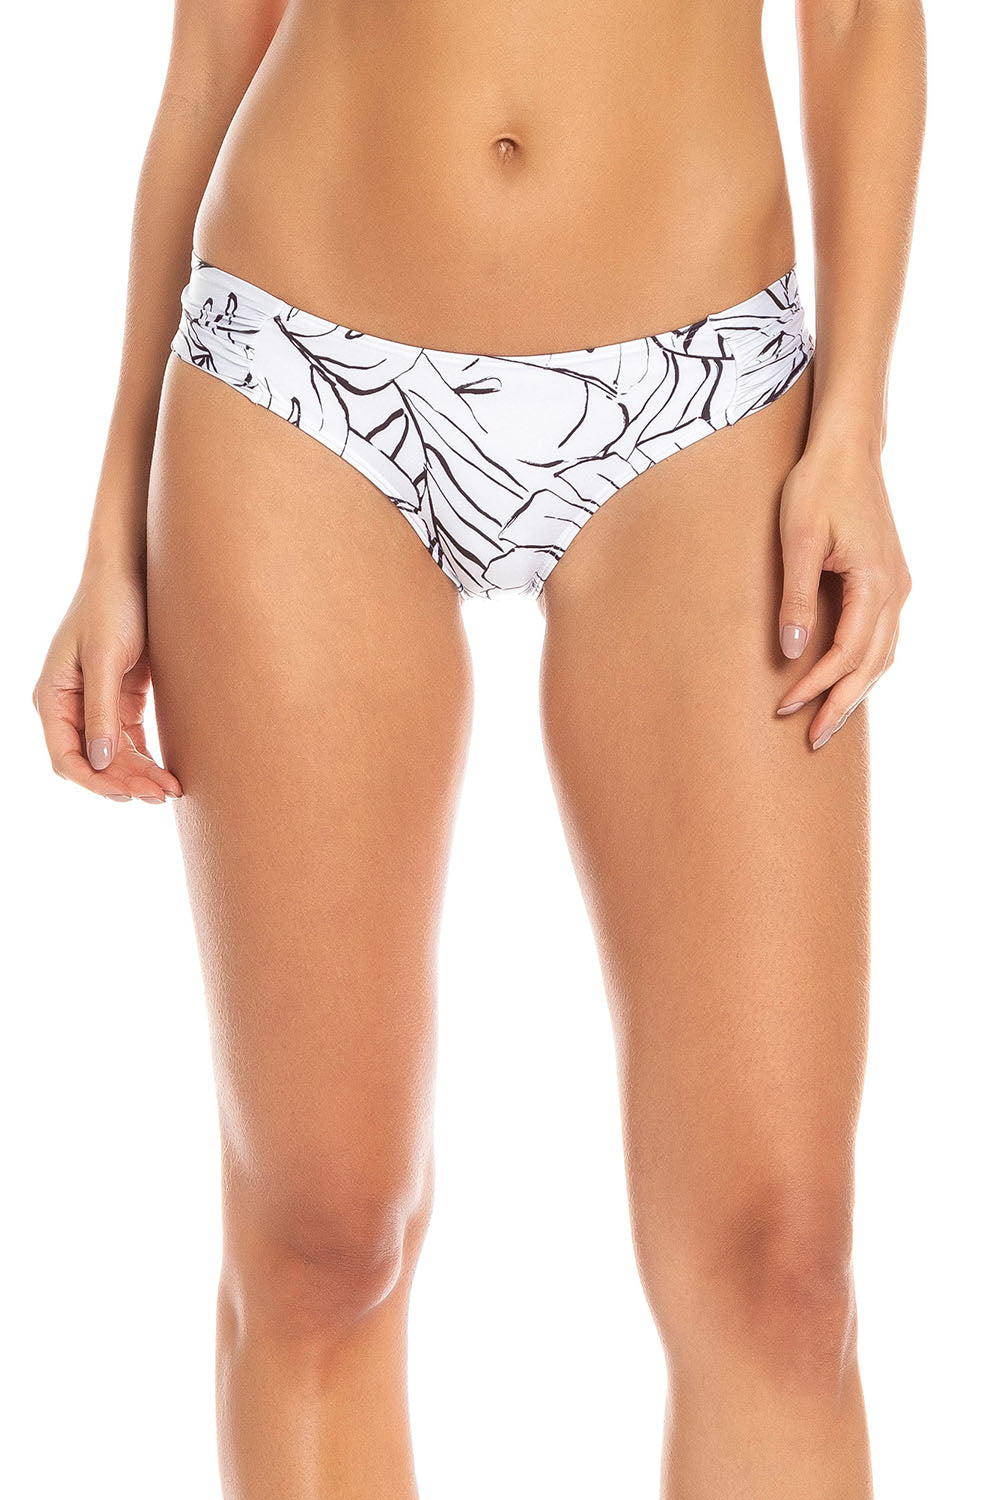 Neutral Botanic Butterfly Tanga